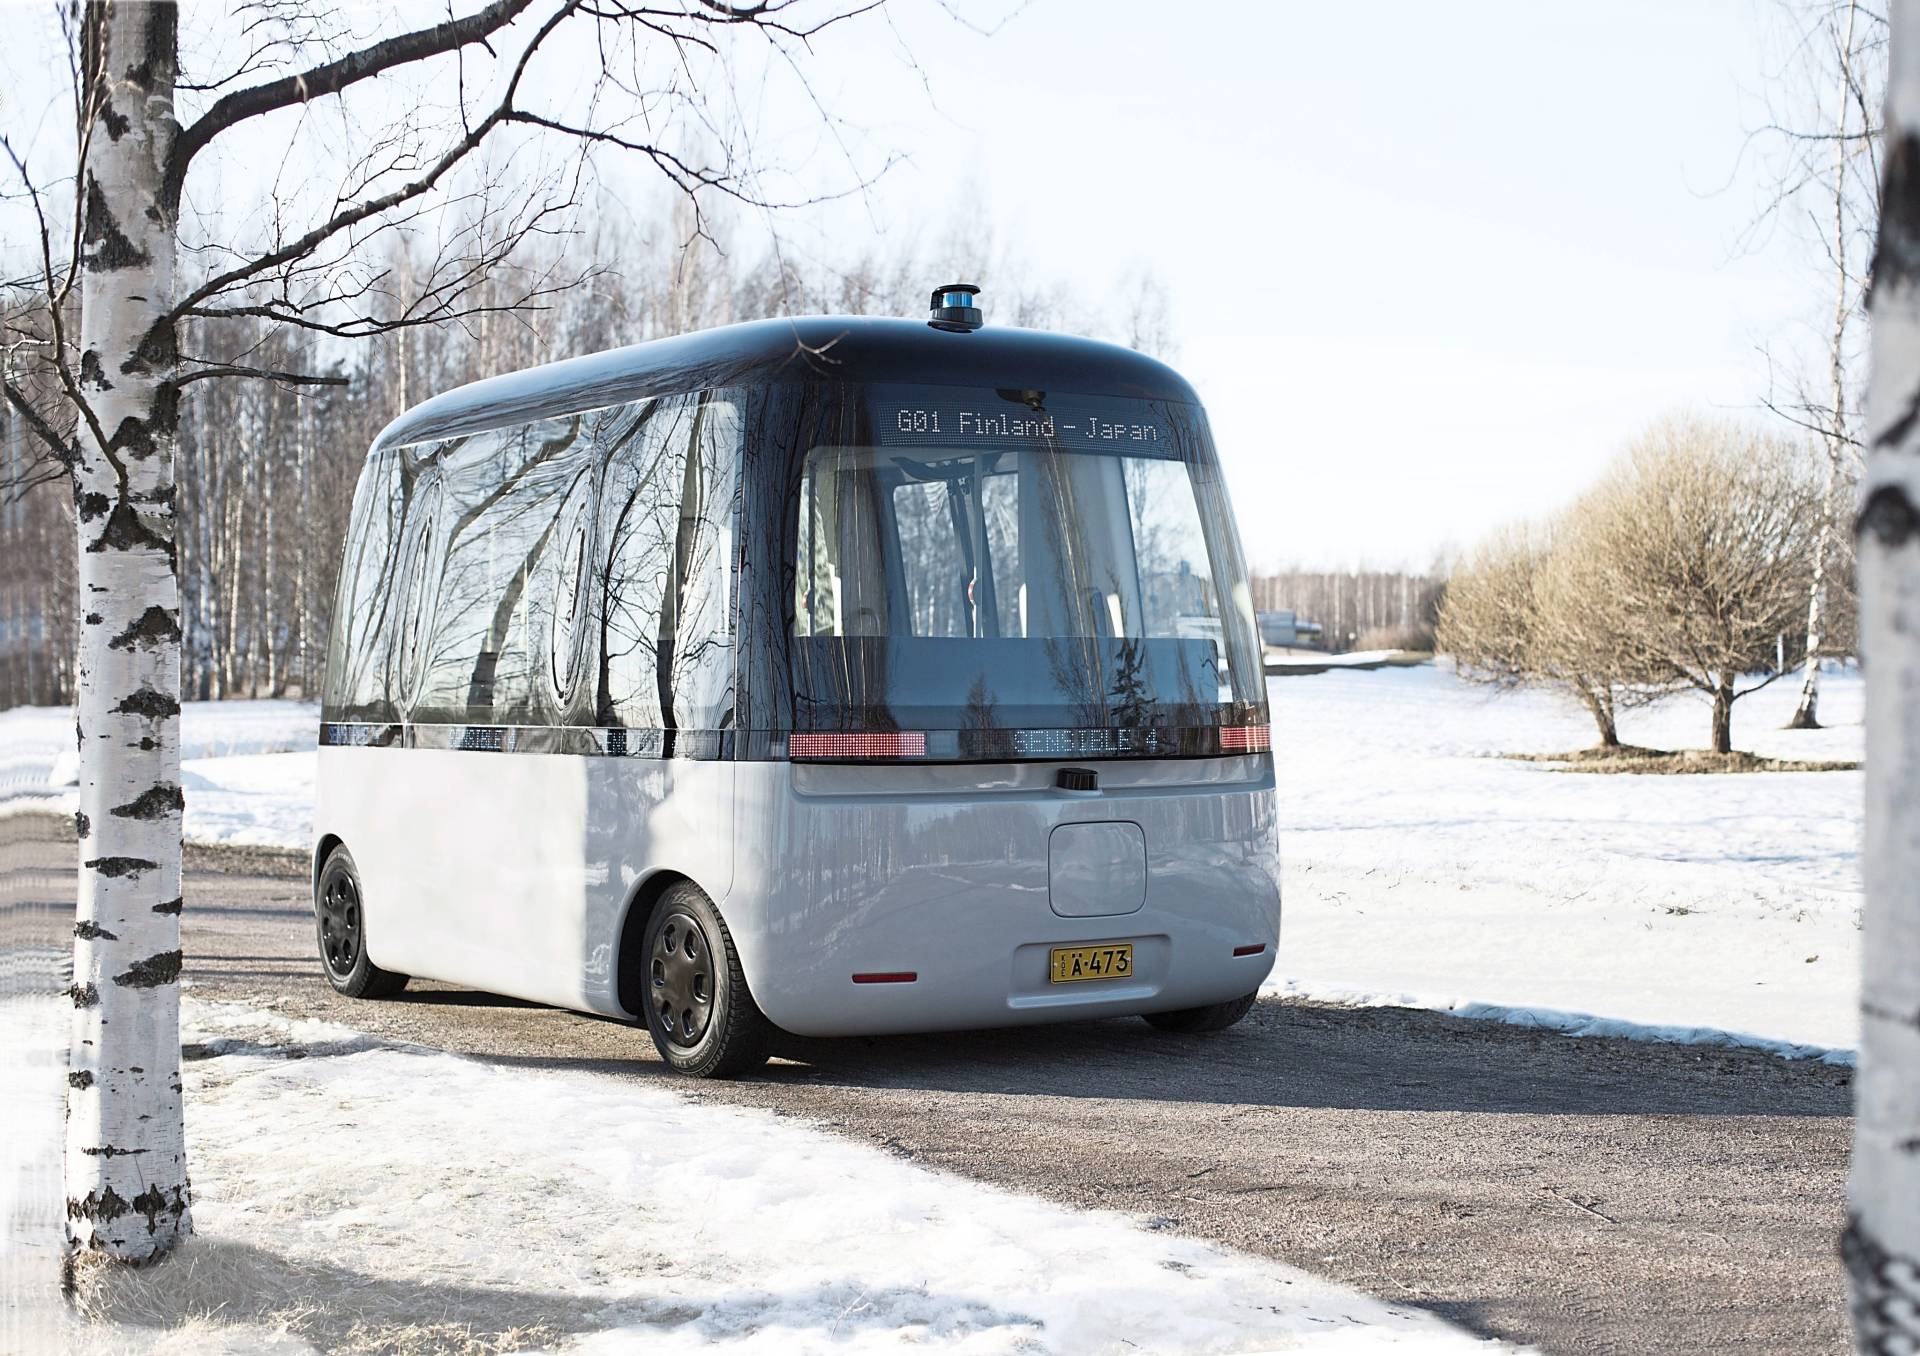 Gacha is a 'self-driving' bus that functions under all weather conditions and will serve regions with declining populations and older citizens who can no longer safely drive.